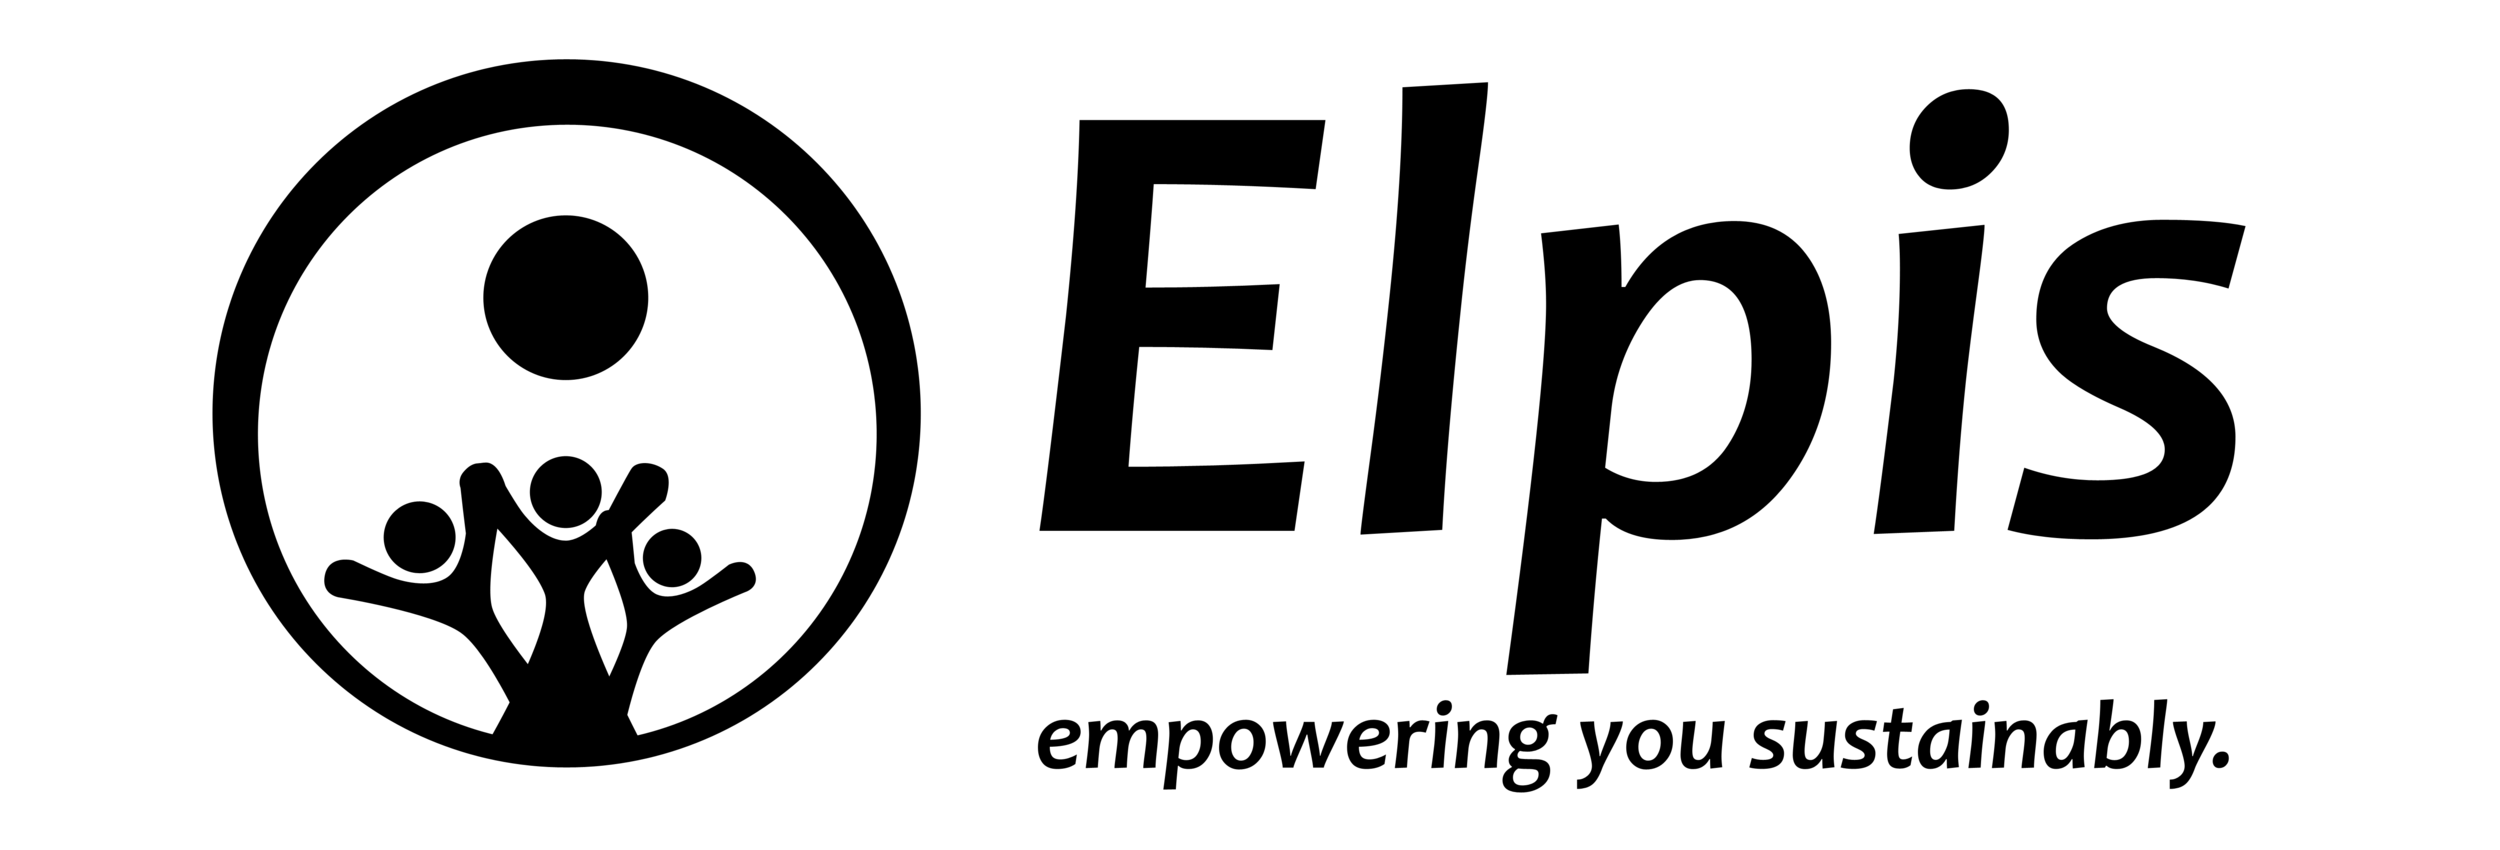 Copy of Logo_17x50_Black_Vector.png